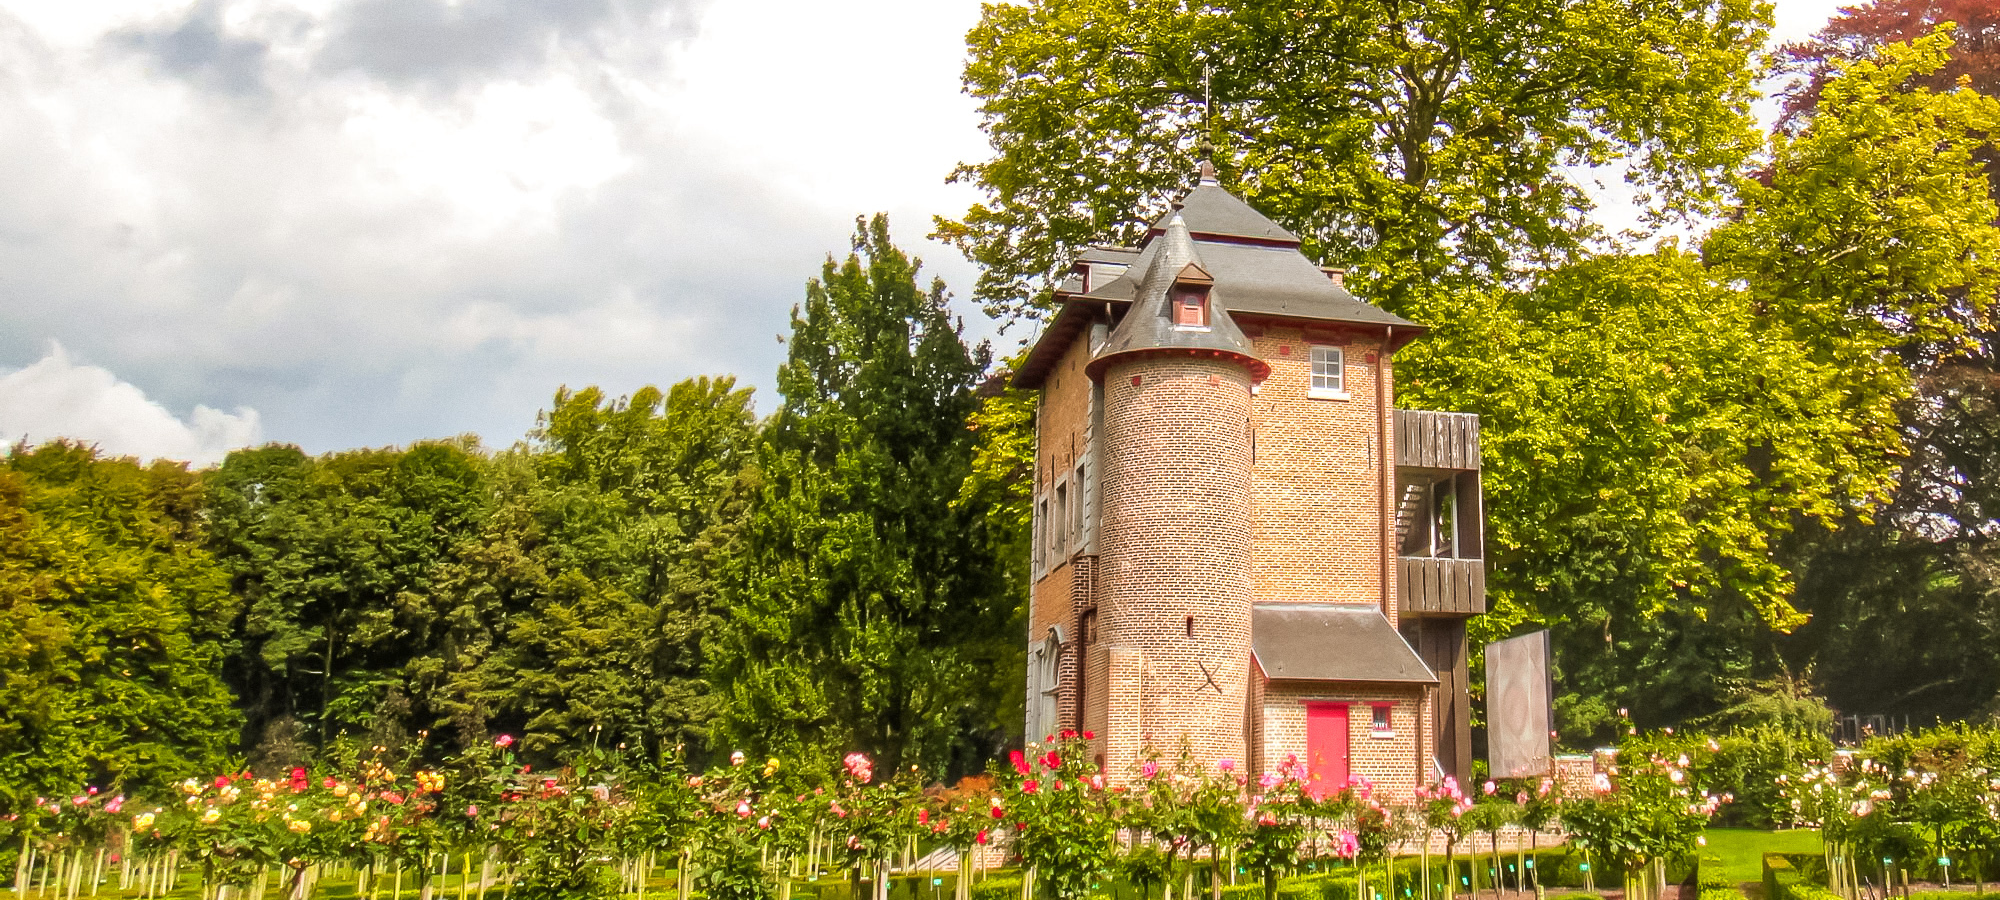 A smart brick building with a turret behind a row of rose buses at Coloma Rose Garden, Belgium